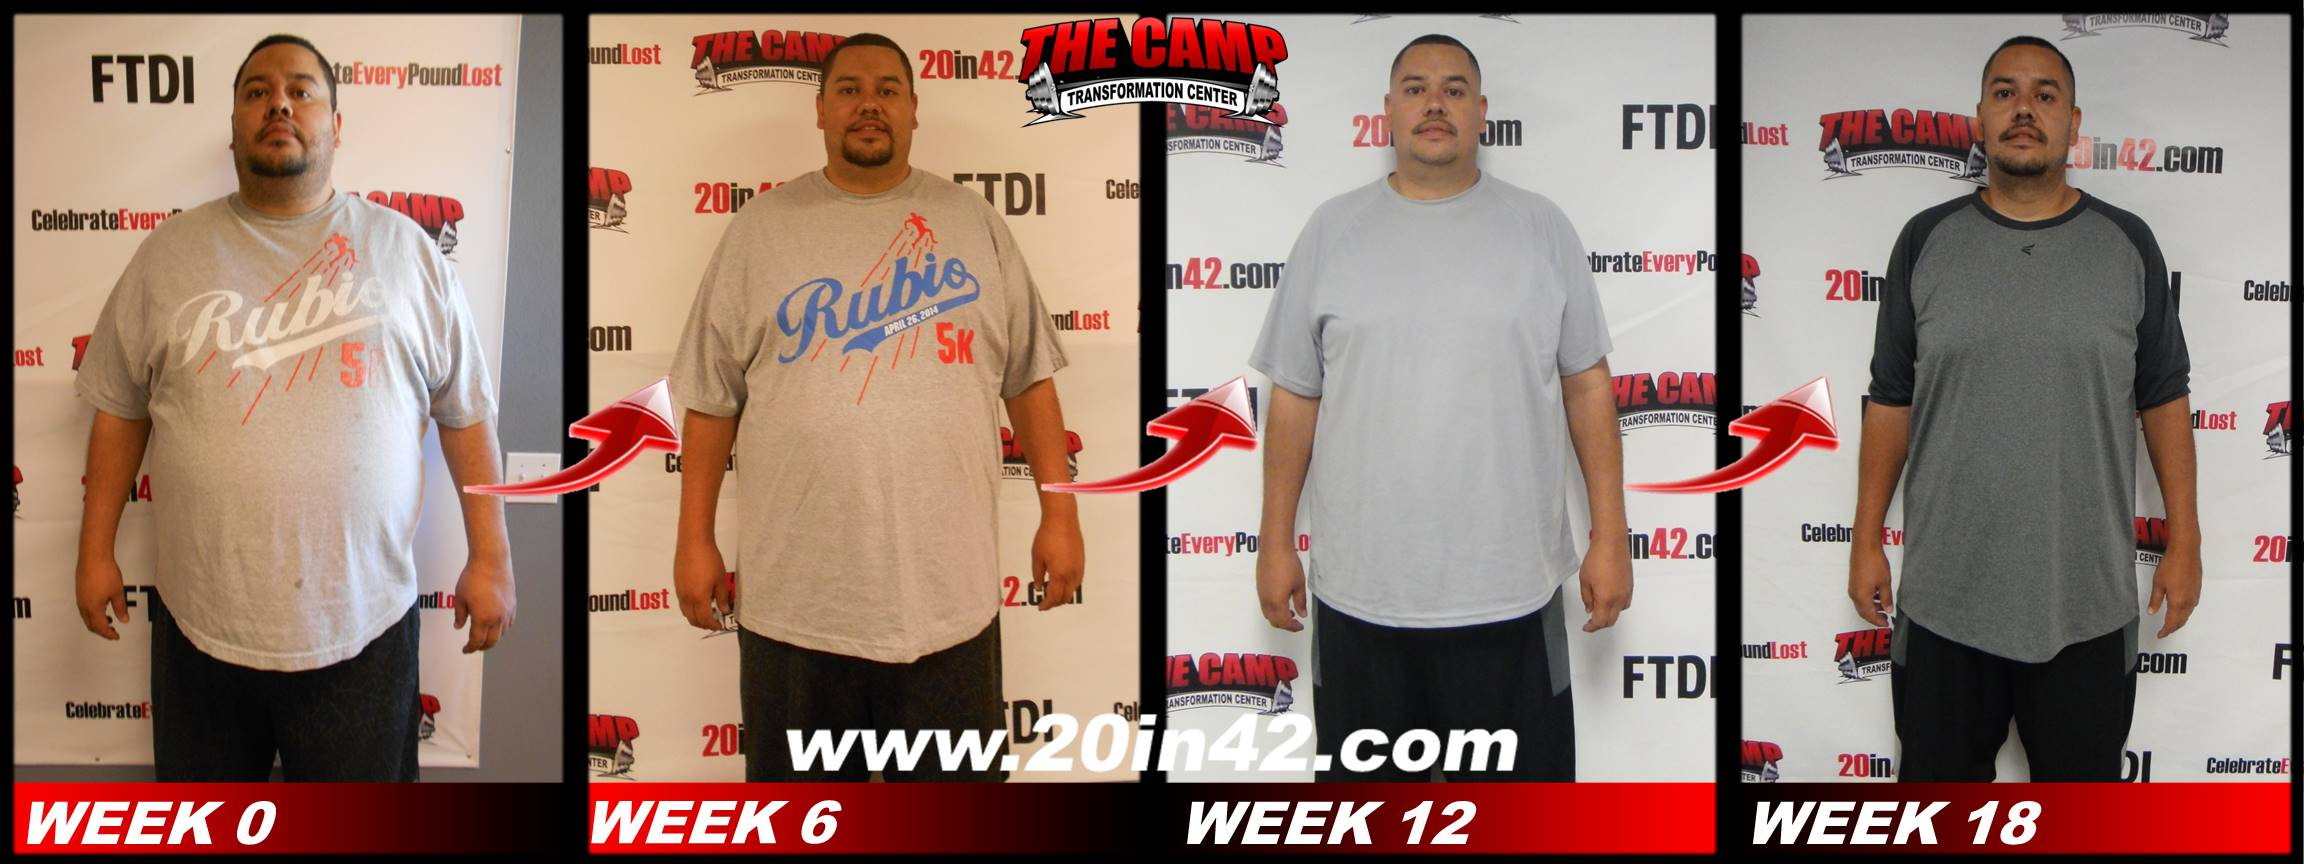 view of a man facing forward, showing his weight loss after 6 weeks, 12 weeks, and 18 weeks in the weight loss challenge program